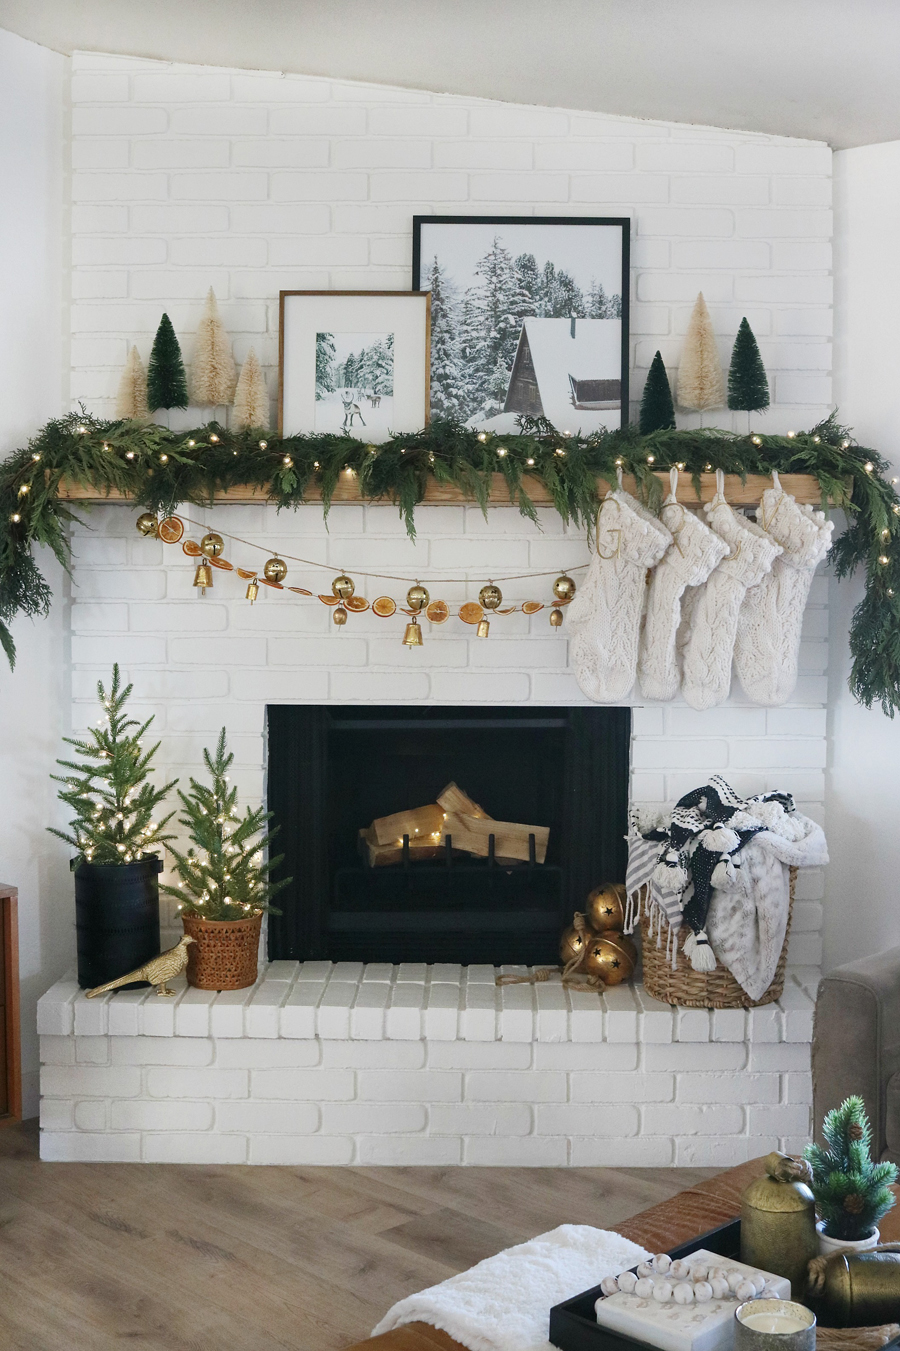 Simple and Modern Cozy Holiday Mantel Decor Ideas